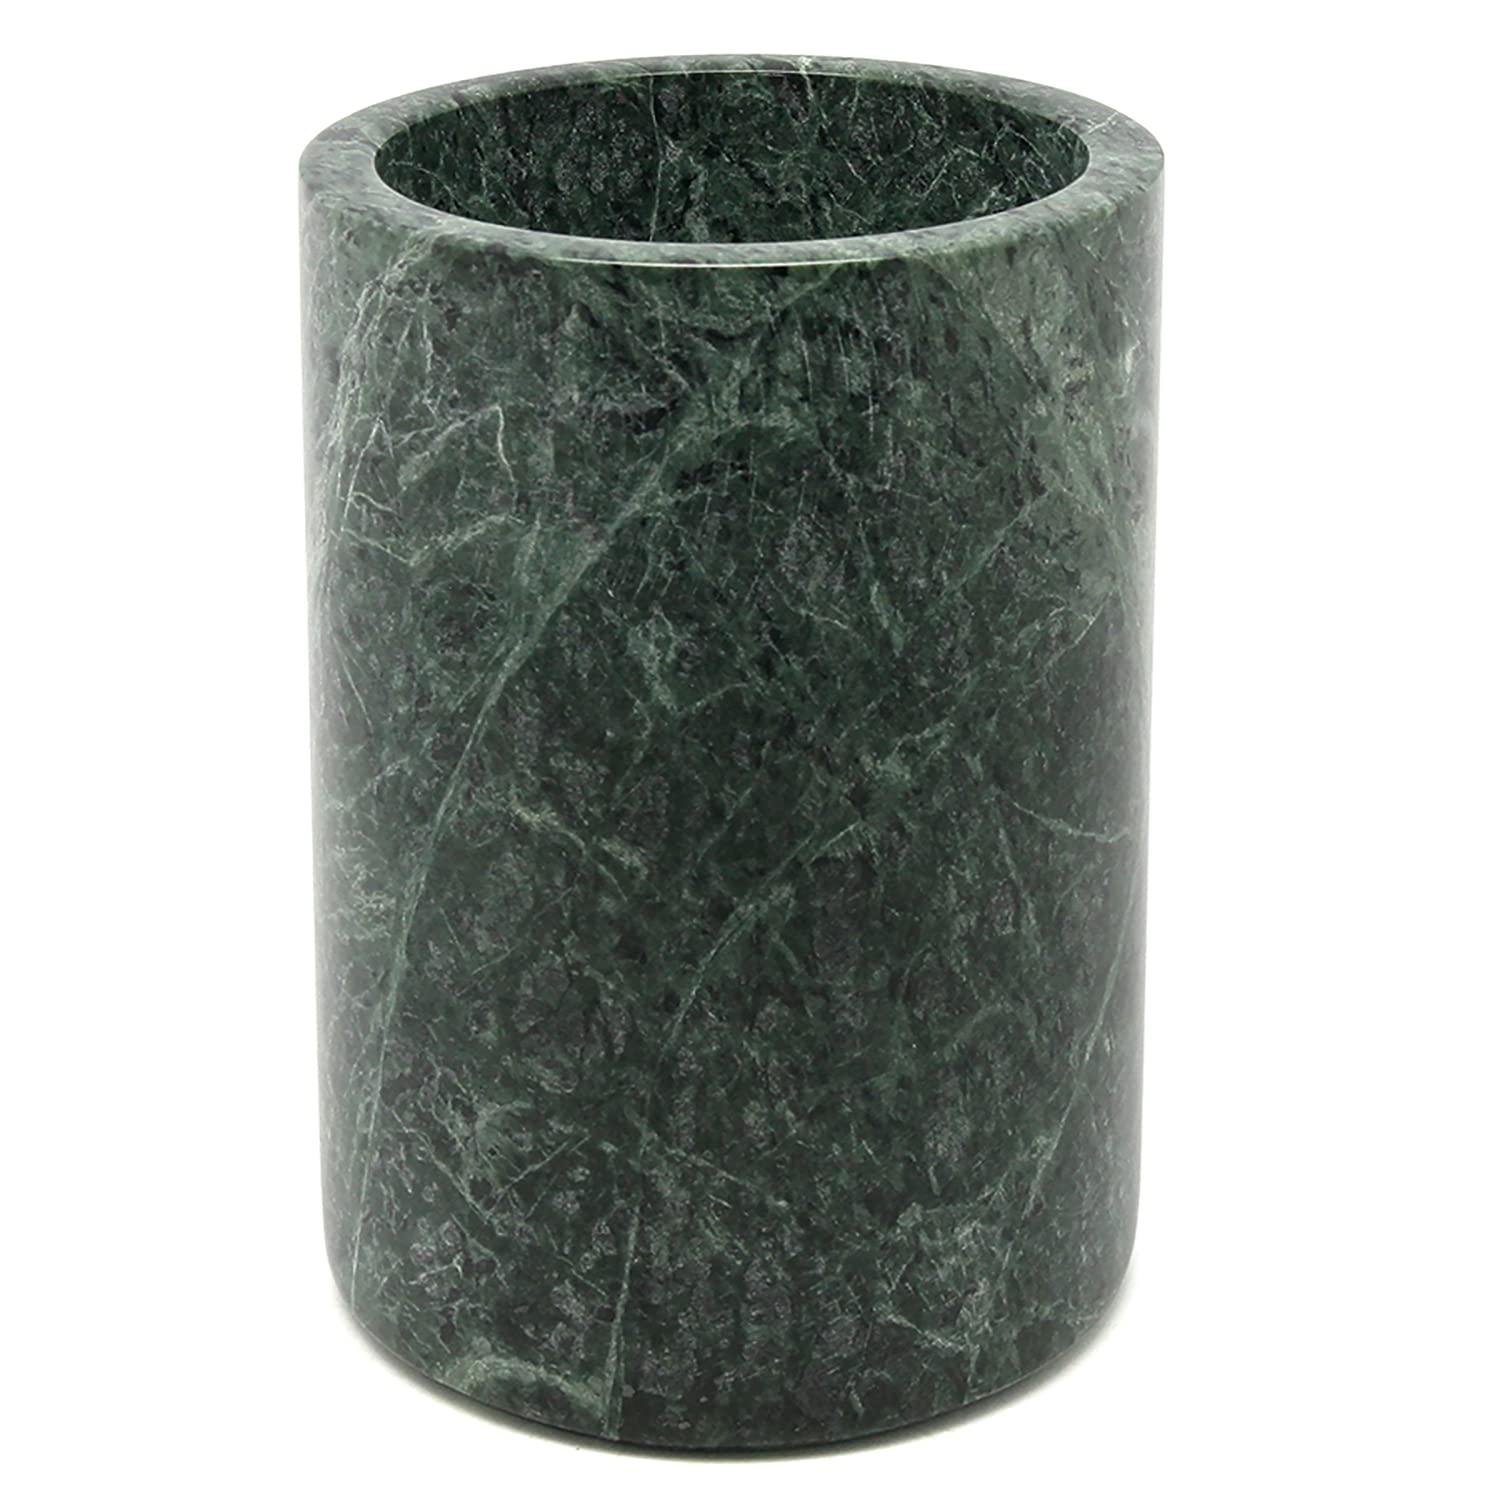 Creative Home Genuine Green Marble Stone Large Tool Holder, Tool Crock, Utensil Holder